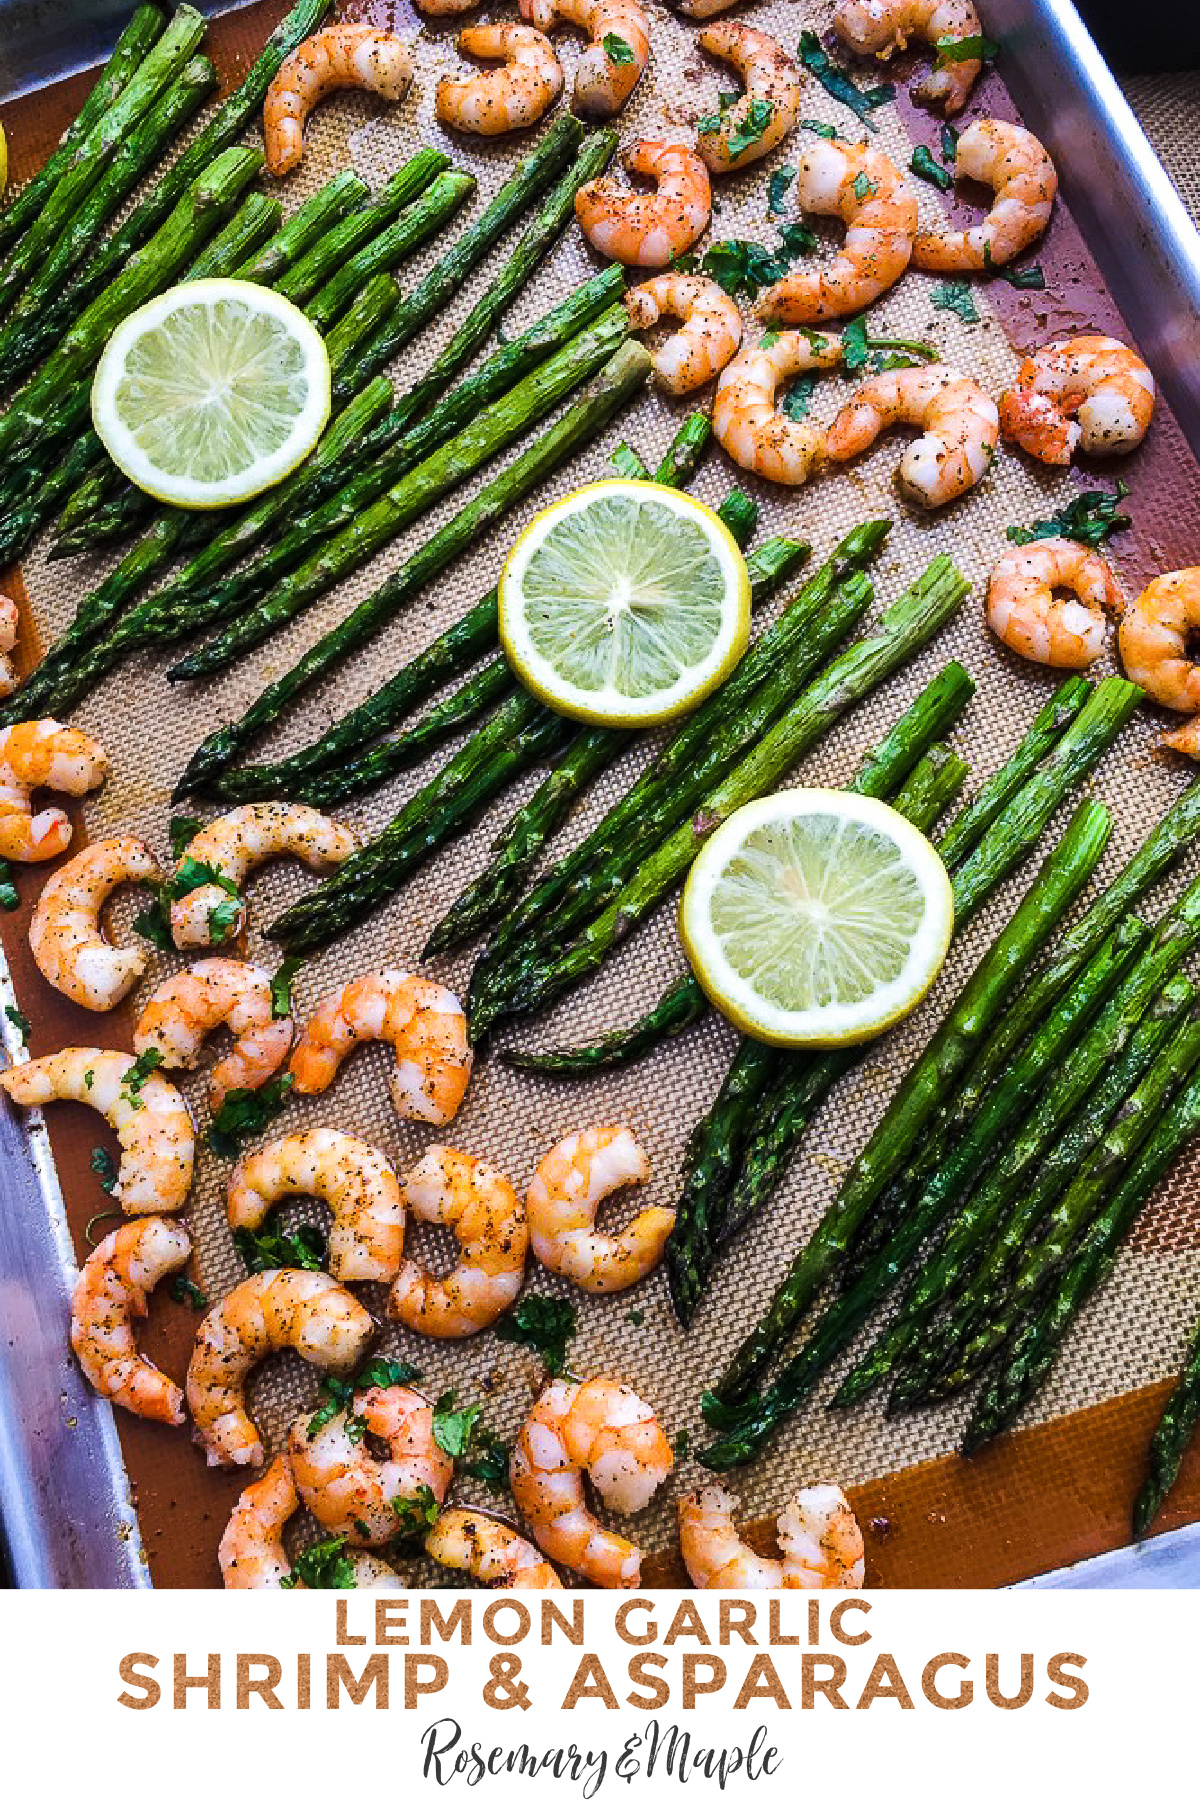 This Lemon-Garlic Shrimp & Asparagus is a one pan meal that is quick, easy, tasty and healthy! A great way to get some veggies in your diet.